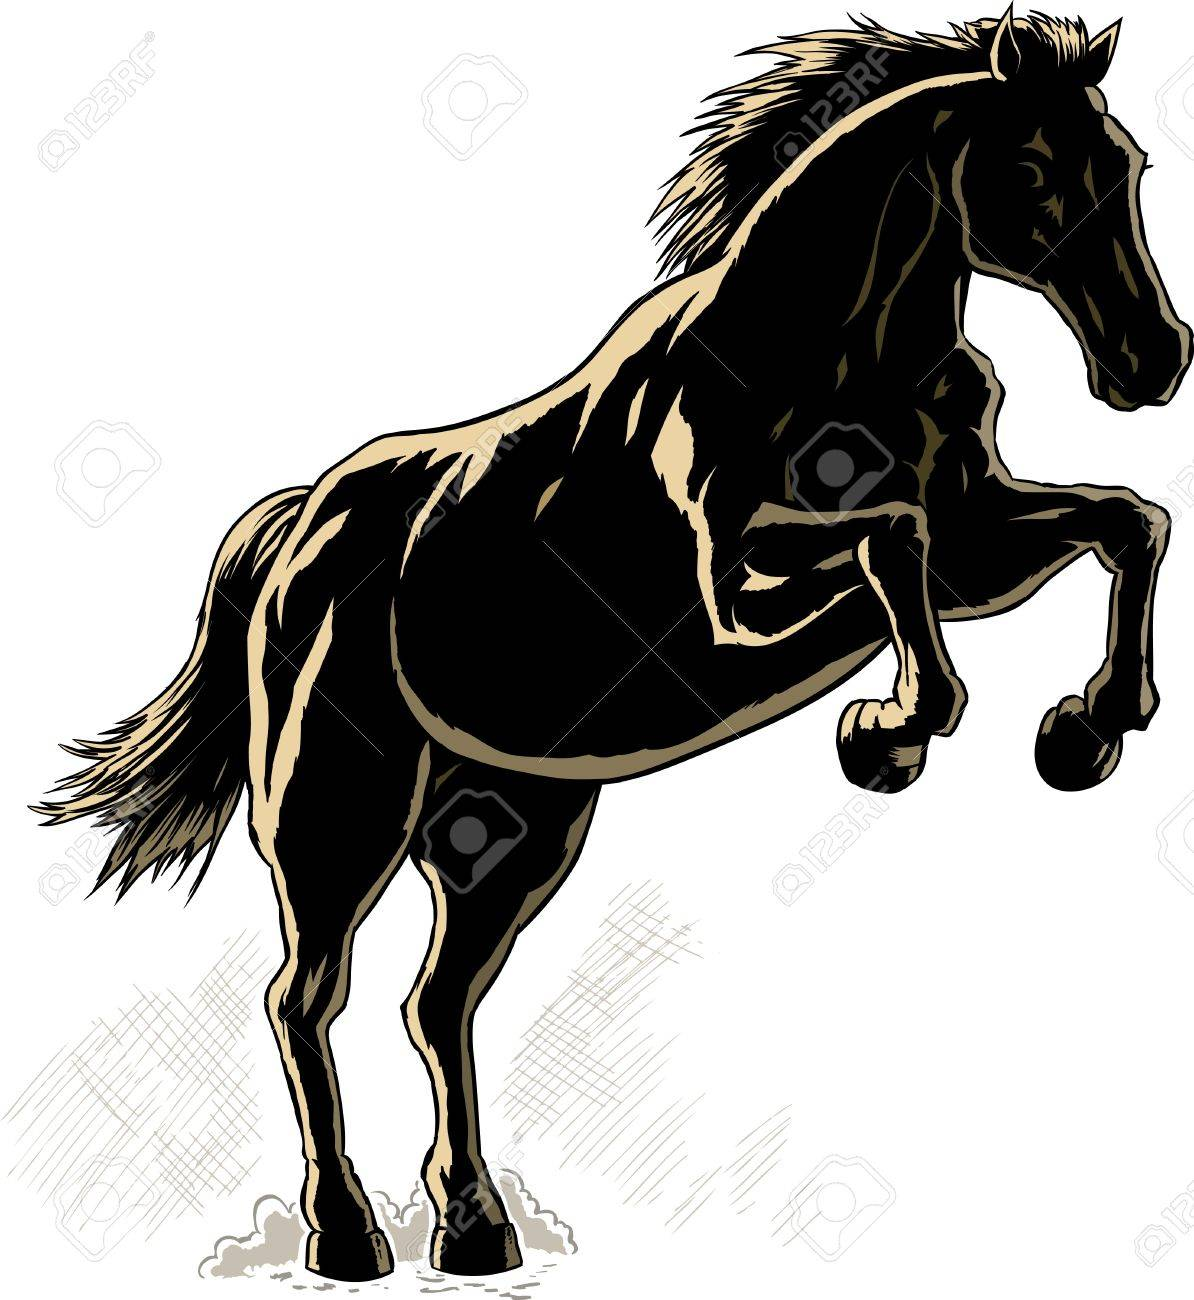 Outline of a horse. Stock Vector - 14125022